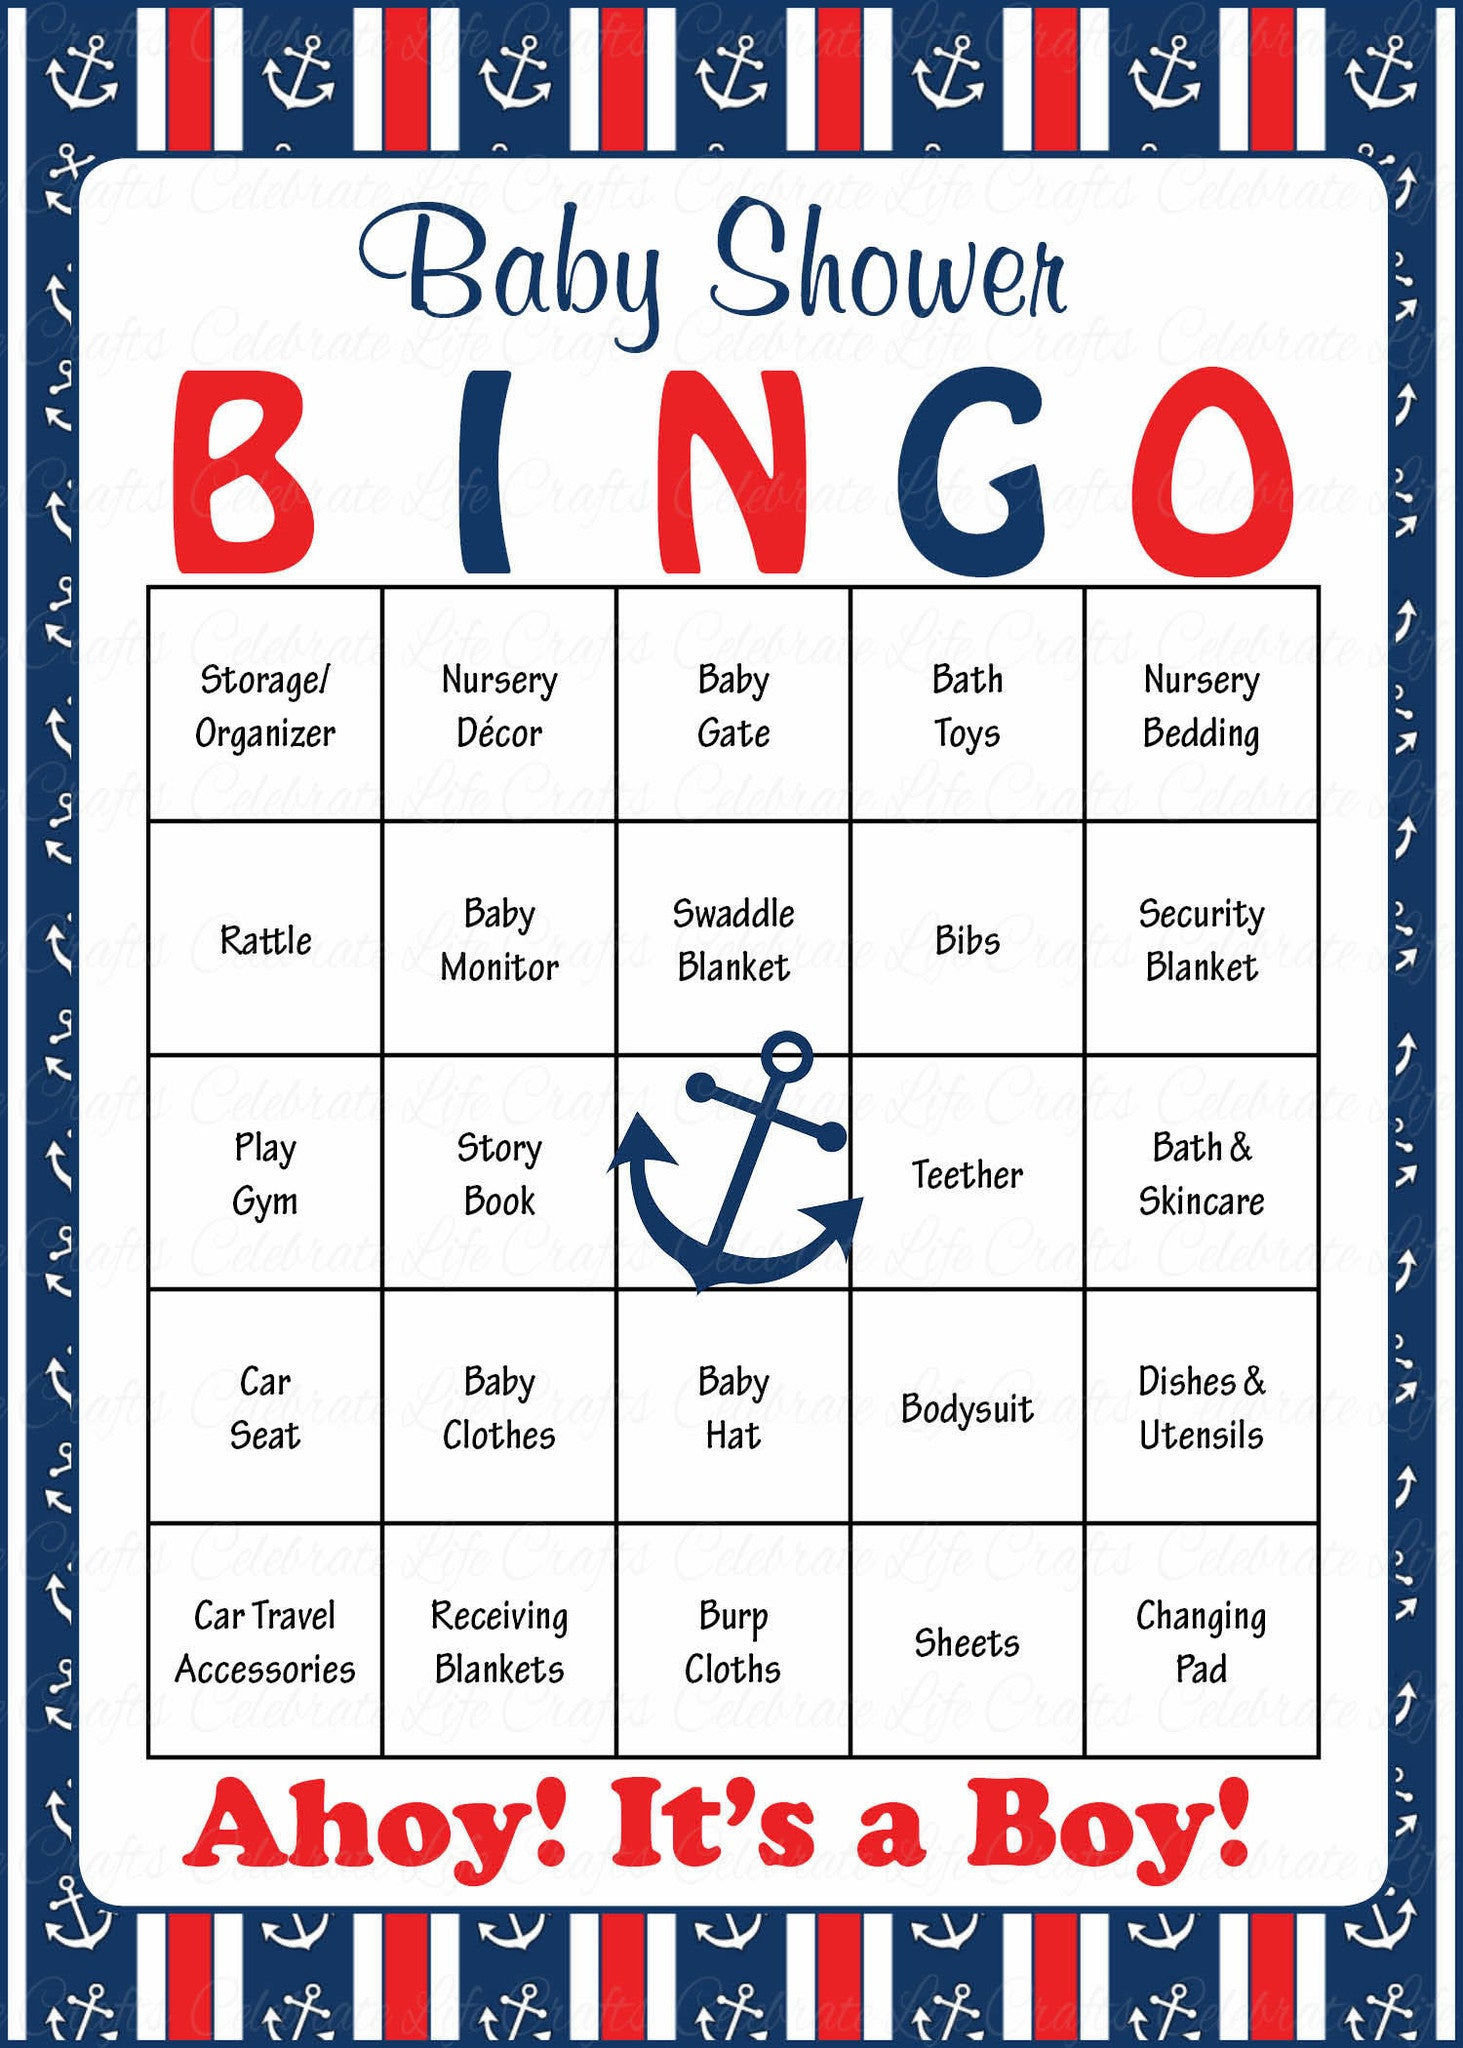 Nautical baby shower game download for boy baby bingo celebrate nautical baby bingo cards printable download prefilled anchor baby shower game for boy navy red solutioingenieria Gallery